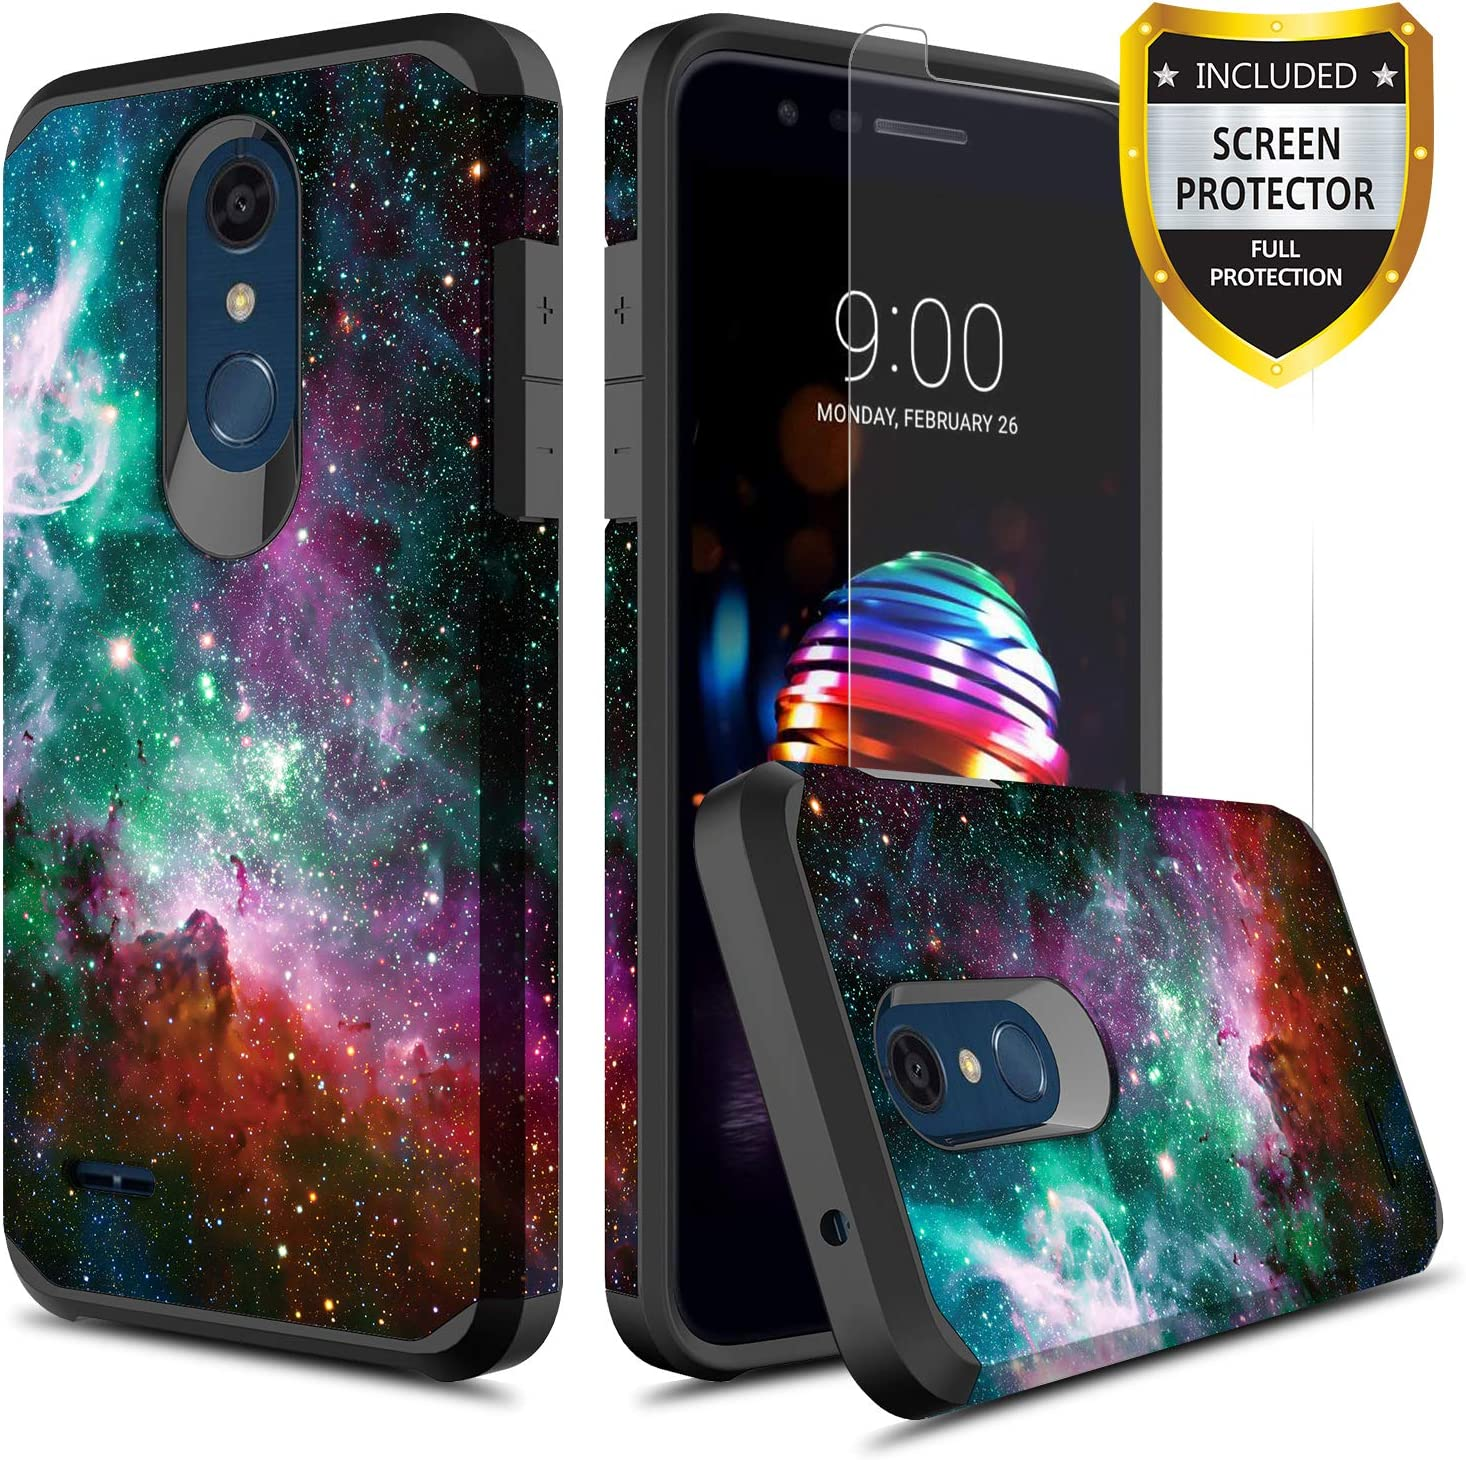 GORGCASE LG K30 Case, LG K10 2018 Case, LG Premier Pro LTE, LG Harmony 2 with Screen Protector, Slim Cute Shockproof Hard PC Girls Women Men Armor Protective Cover for LG Phoenix Plus Galaxy Star